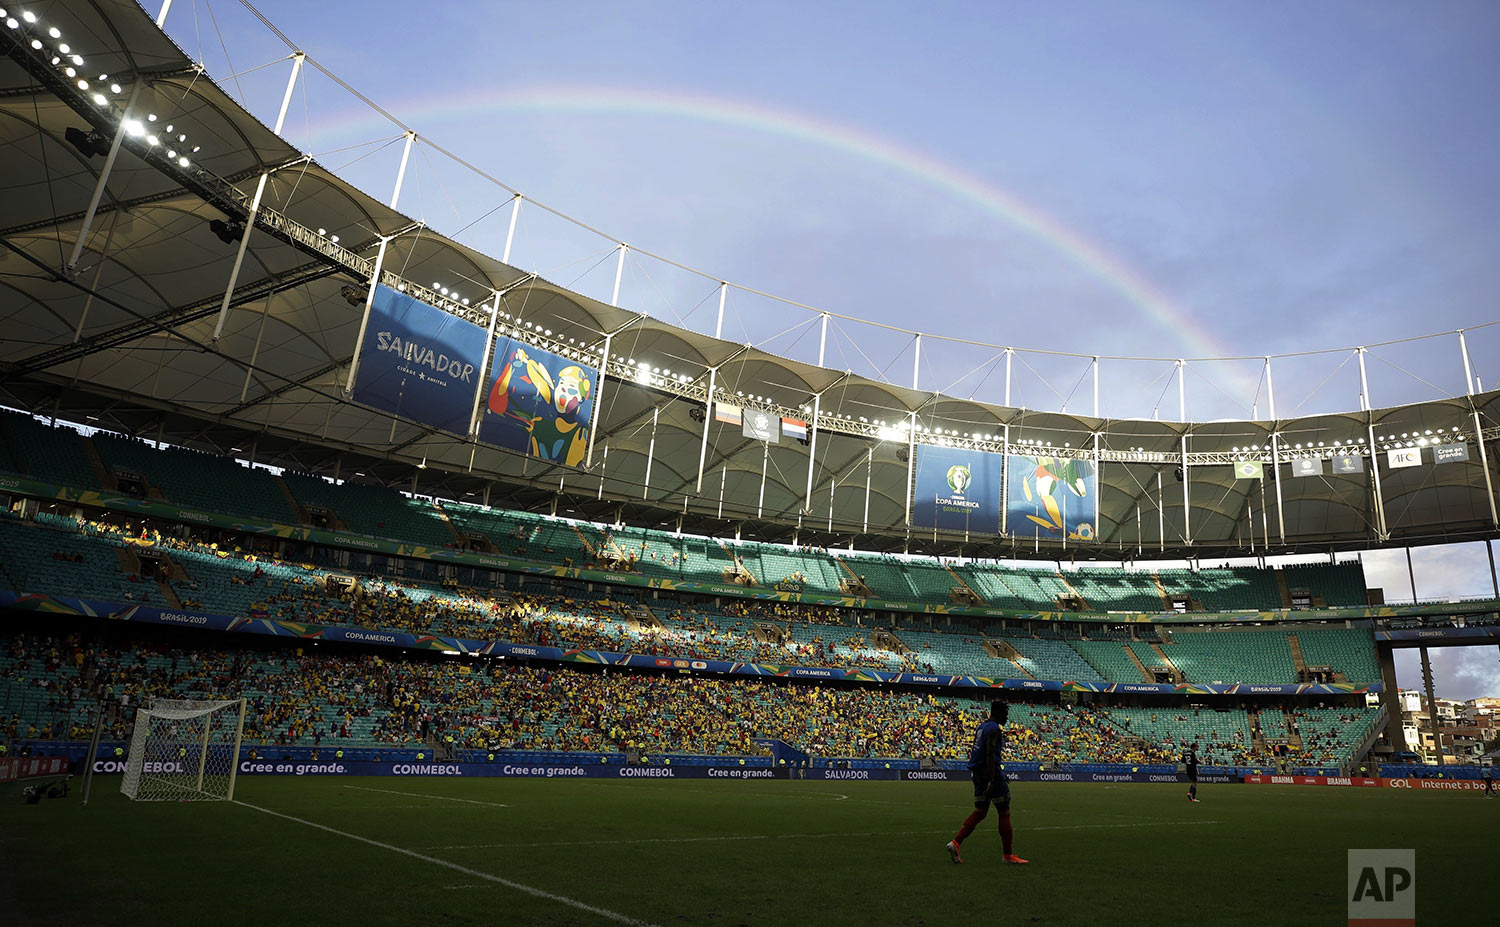 A rainbow appears in the sky at the end of the first half of a Copa America Group B soccer match between Colombia and Paraguay at Arena Fonte Nova in Salvador, Brazil, Sunday, June 23, 2019. Colombia beat Paraguay 1-0 Sunday with a second-string team to stay perfect at the Copa America with three wins and without conceding any goals. (AP Photo/Ricardo Mazalan)